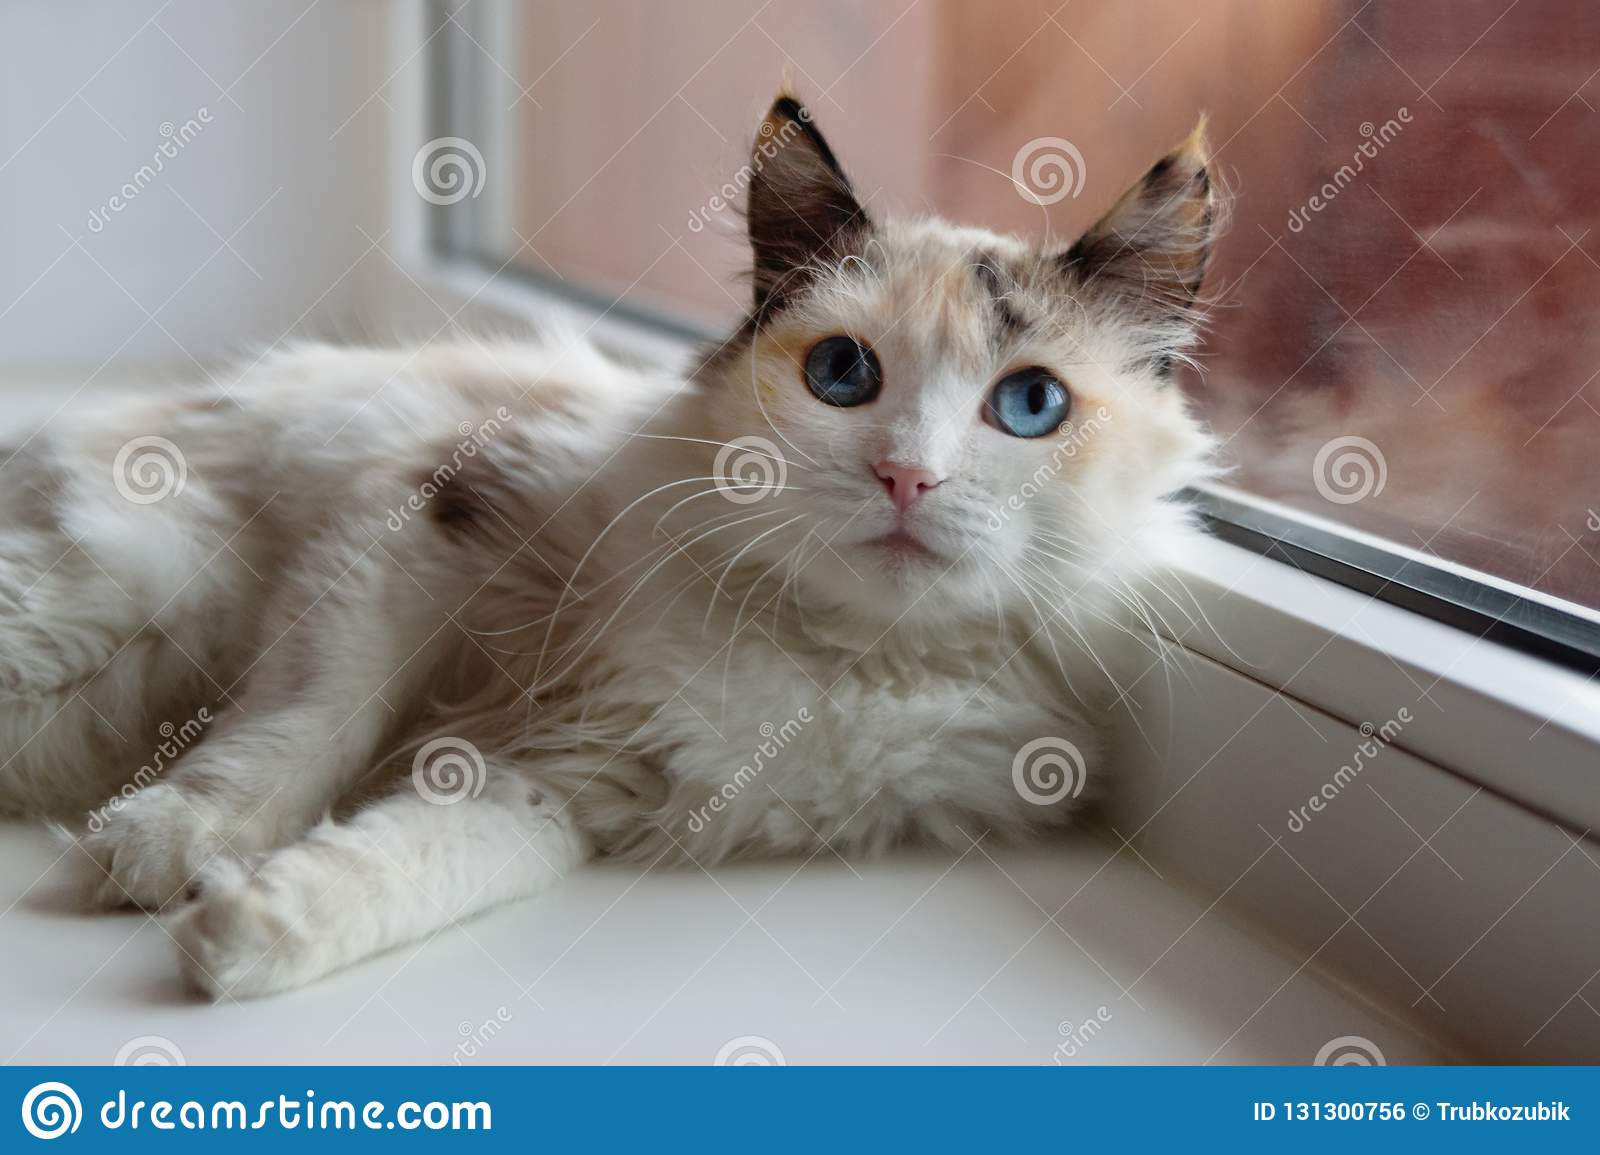 Beautiful tortoiseshell fluffy cat with blue eyes lying near to a window